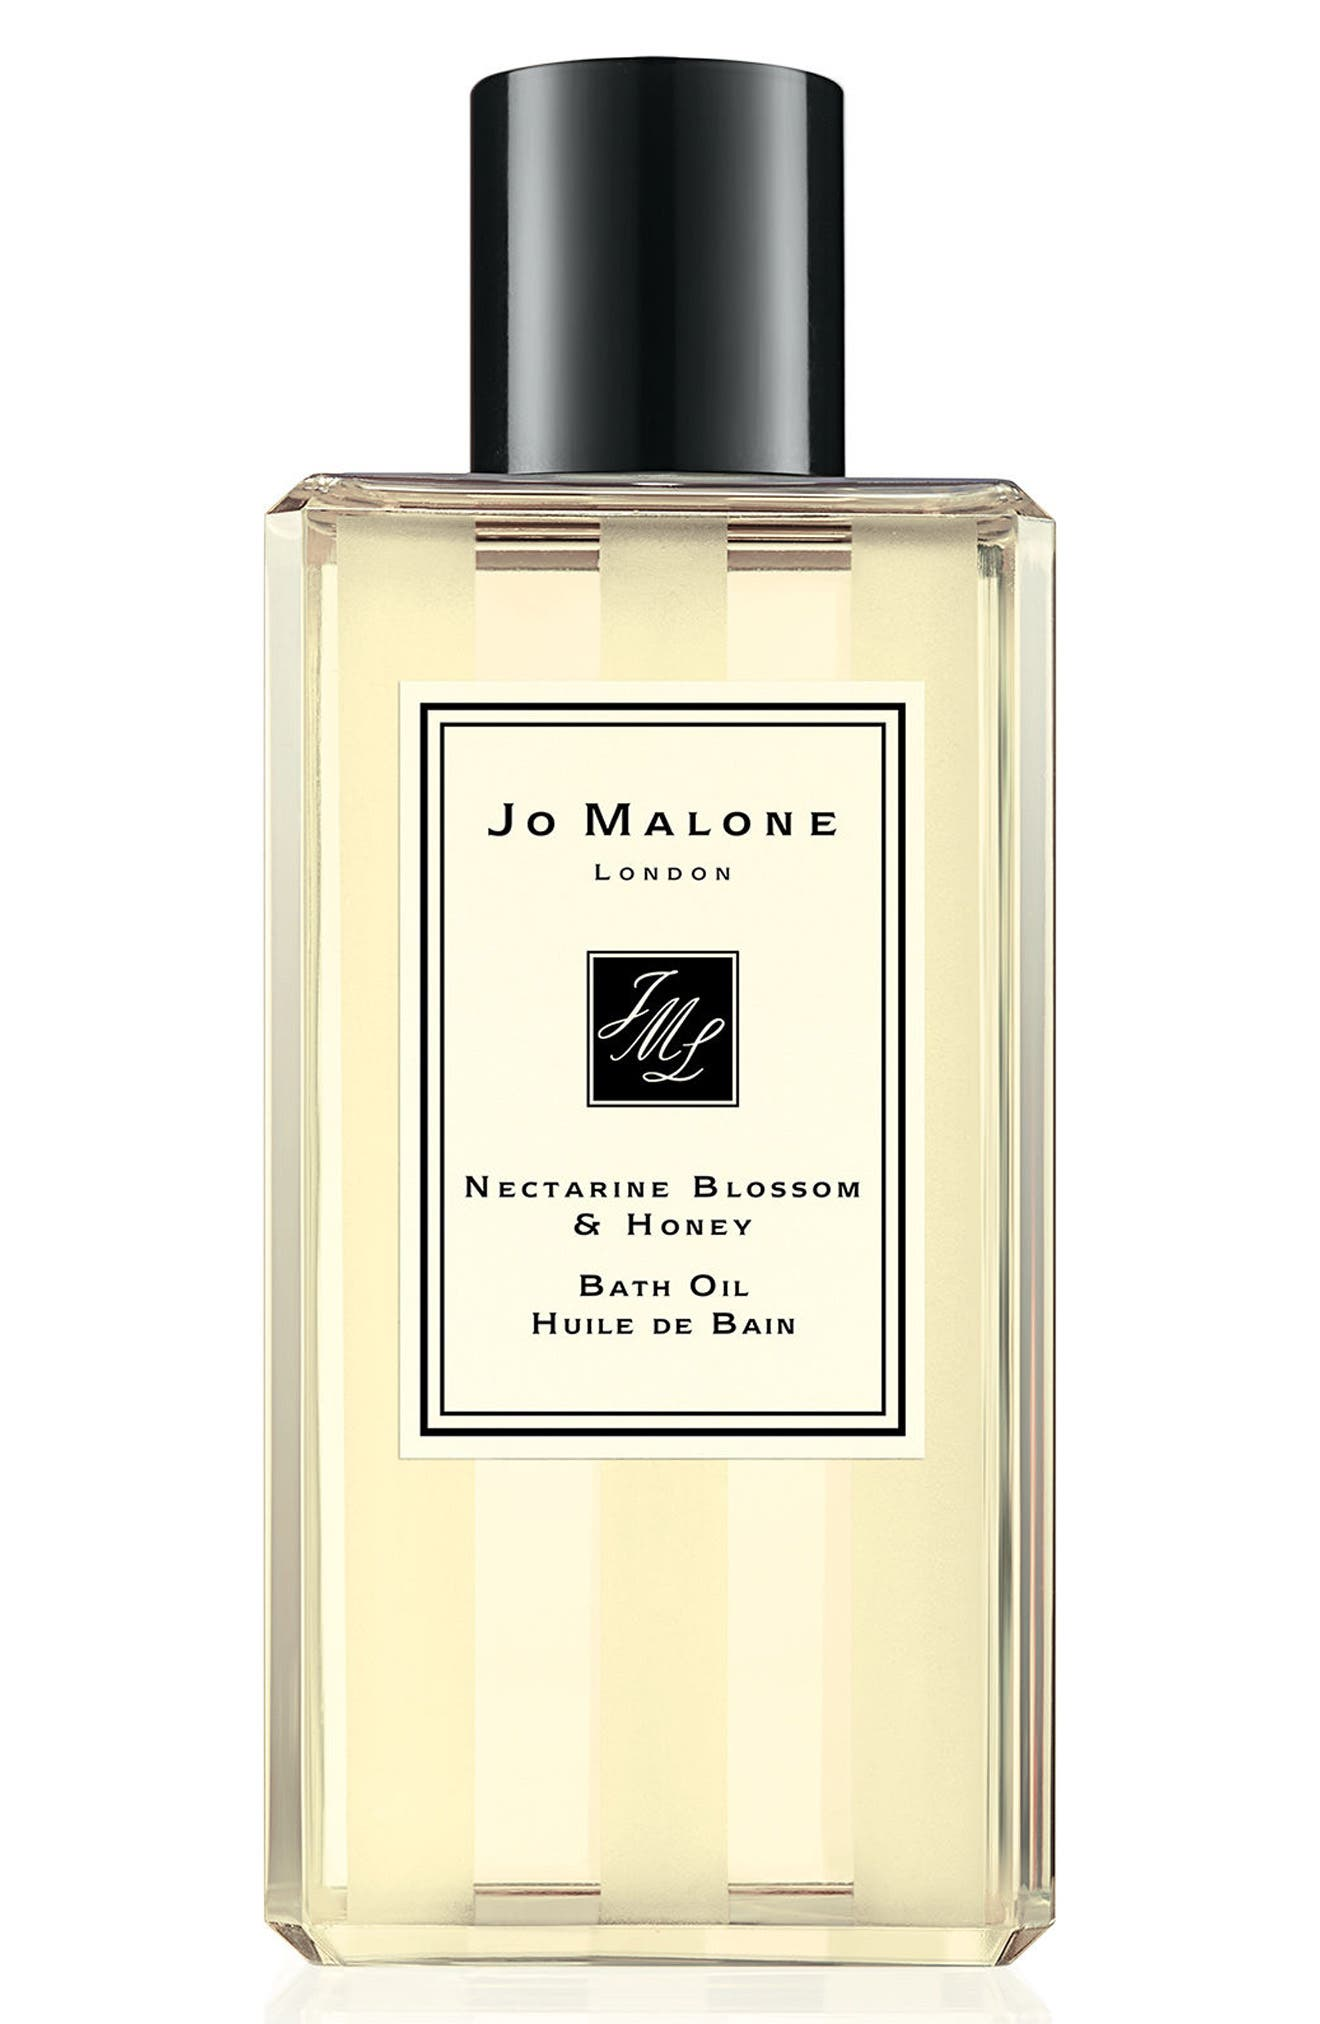 JO MALONE LONDON™ 'Nectarine Blossom & Honey' Bath